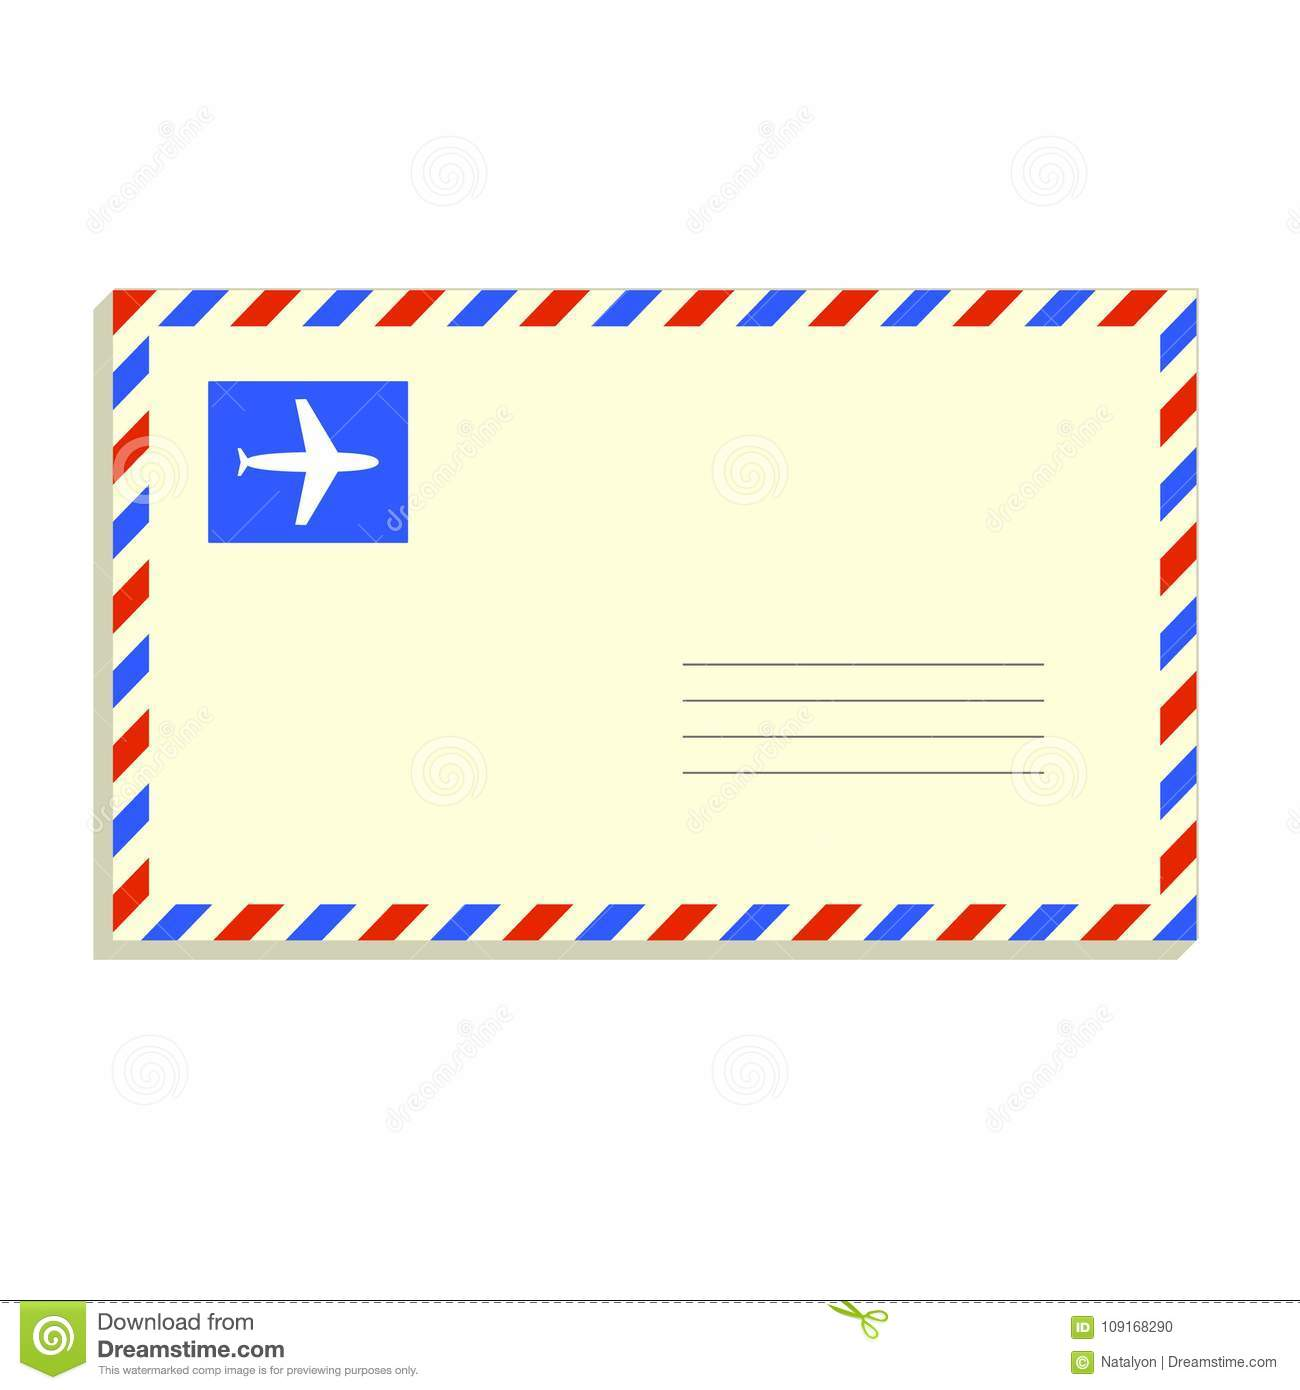 snail mail letter in the envelope on white, flat vector illustration